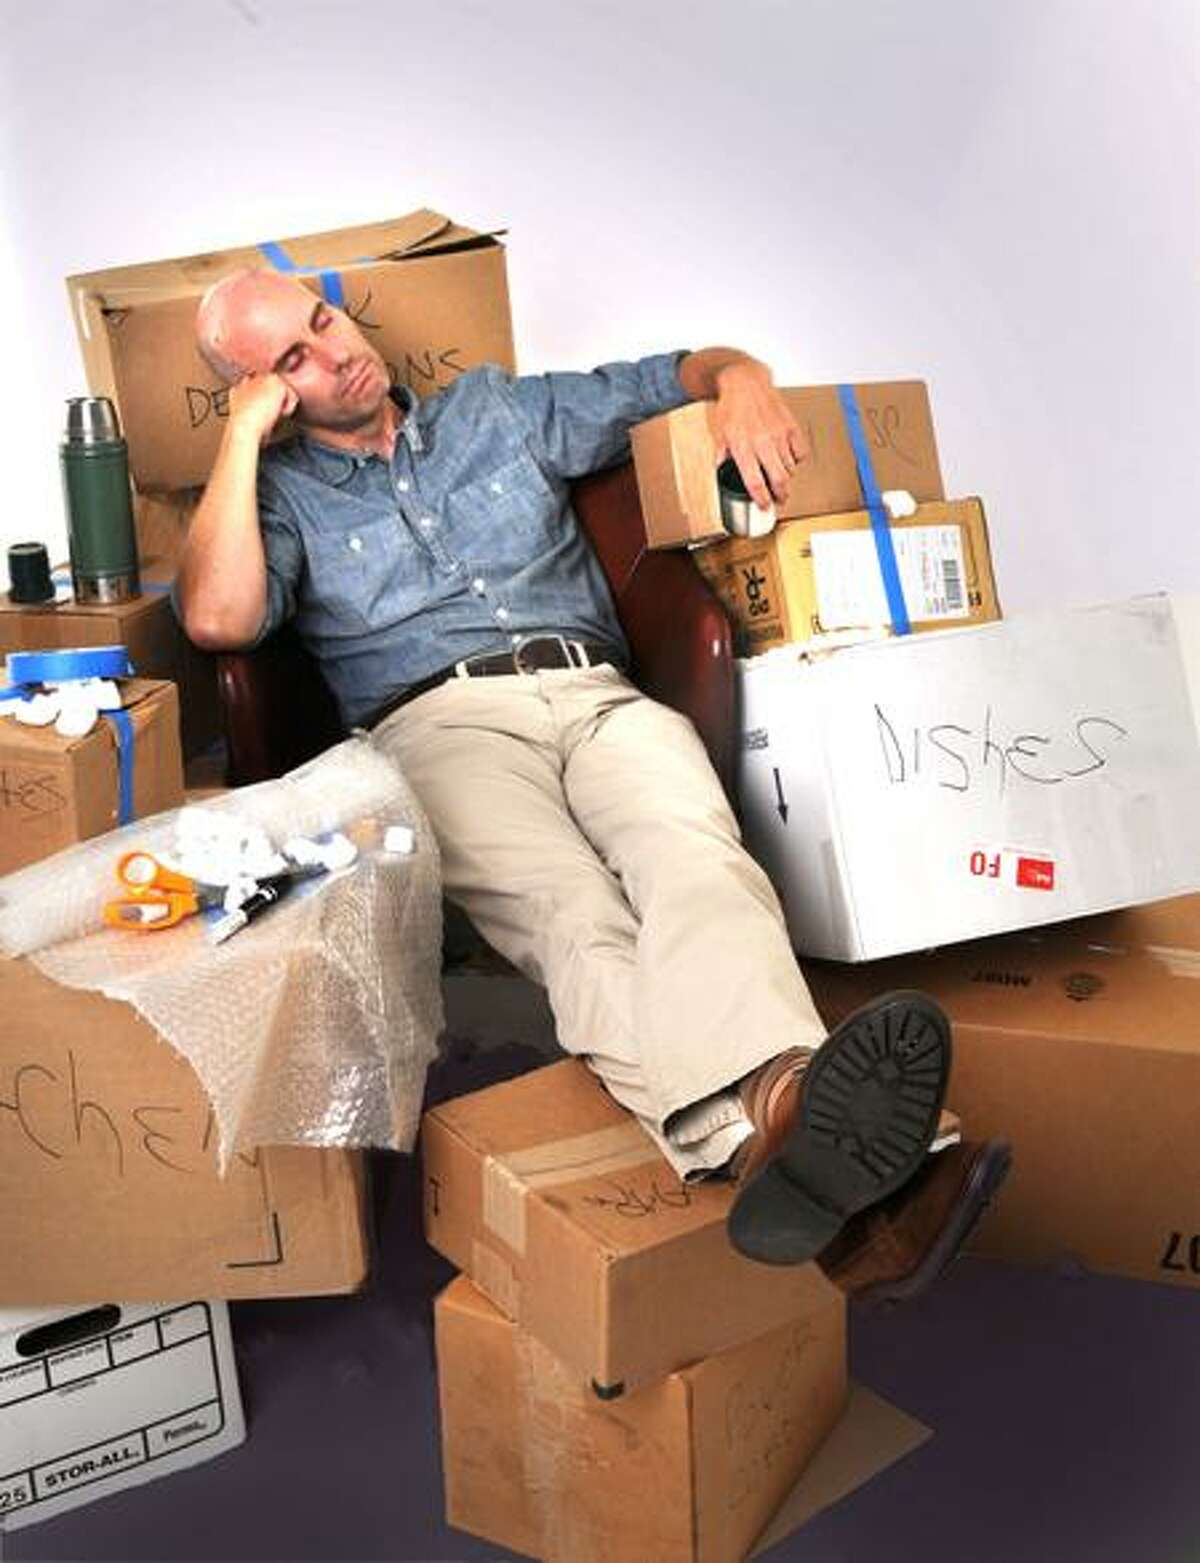 Melanie Stengel/Register photo illustration: After a long day of carting boxes, one might dream about never having to move again.